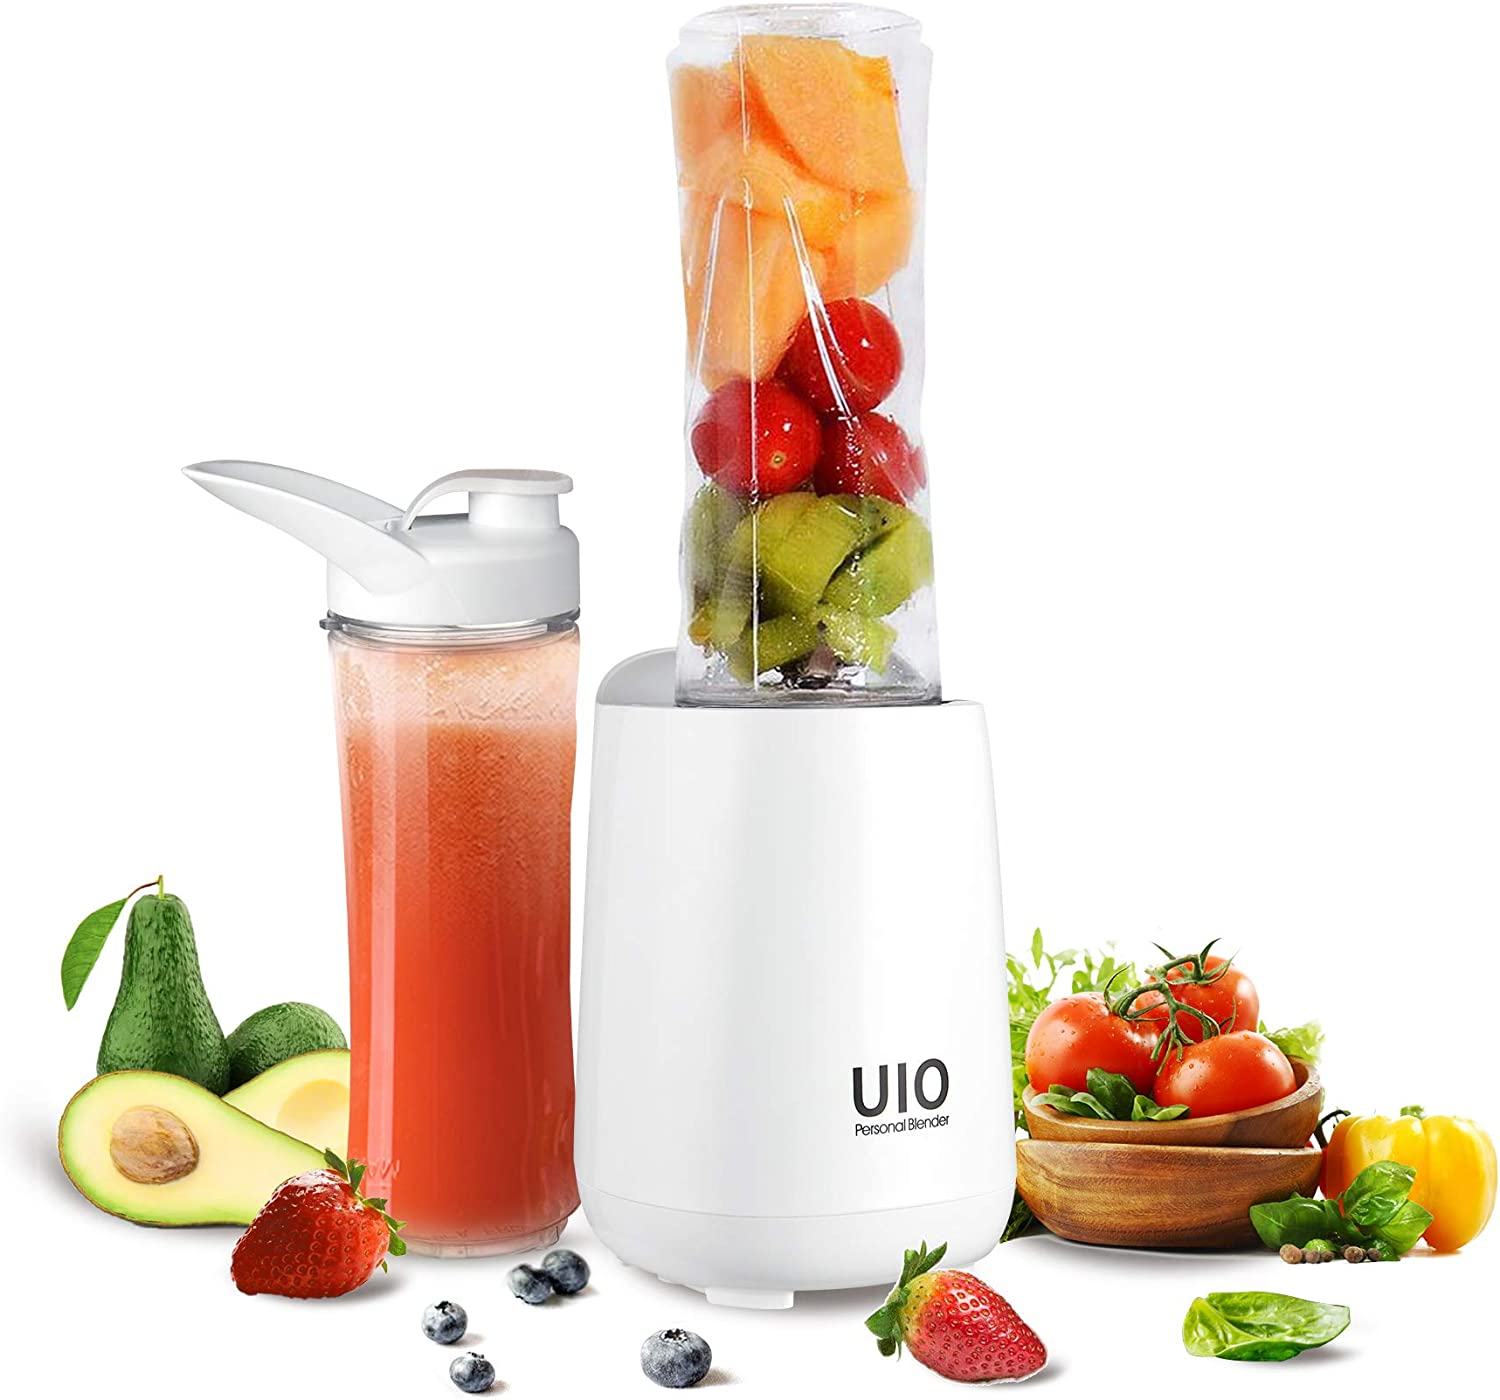 Personal Blender UIO, 250W Smoothies Blender for Shakes and Smoothies, Mini Blender, 2×20oz Travel Cups, Small Portable Blender for Ice Blending, Fruit Juice, Protein Meal Pre